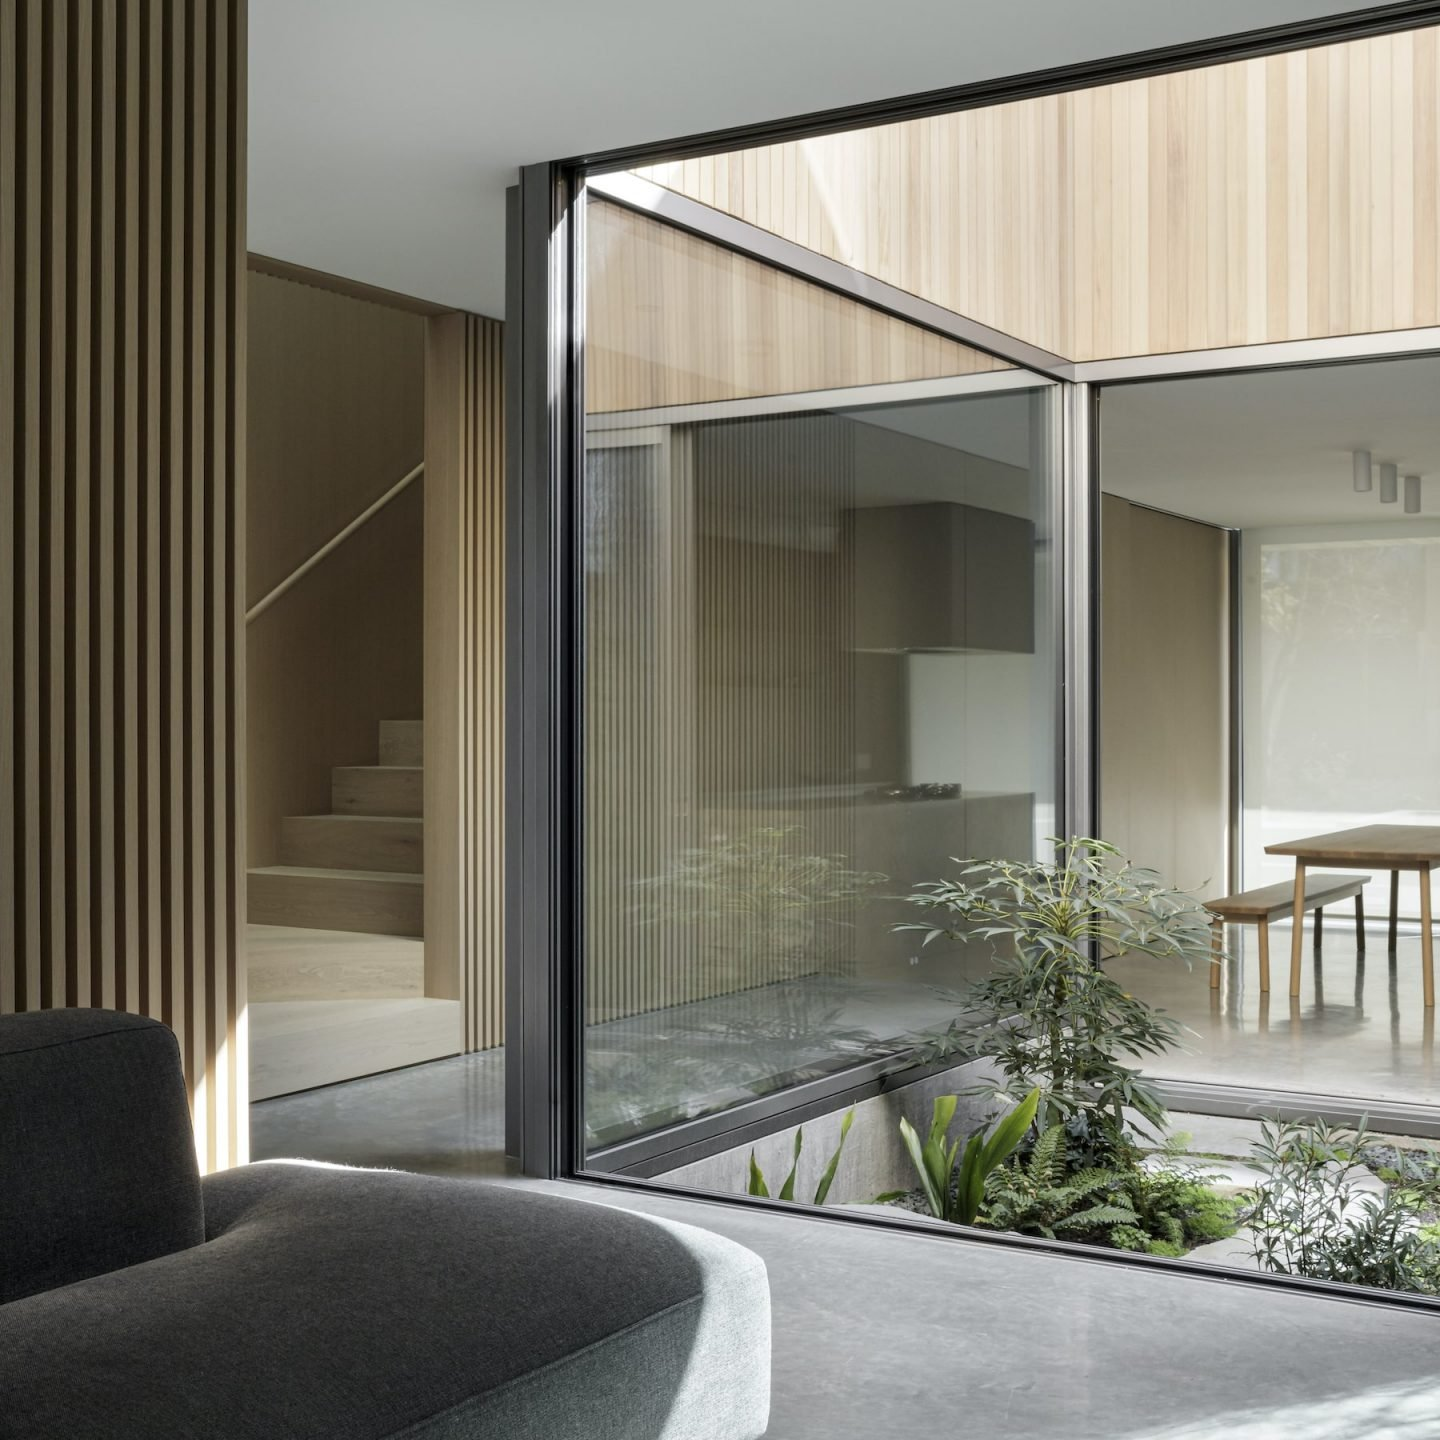 IGNANT-Architecture-Leckie-Studio-Courtyard-House-06